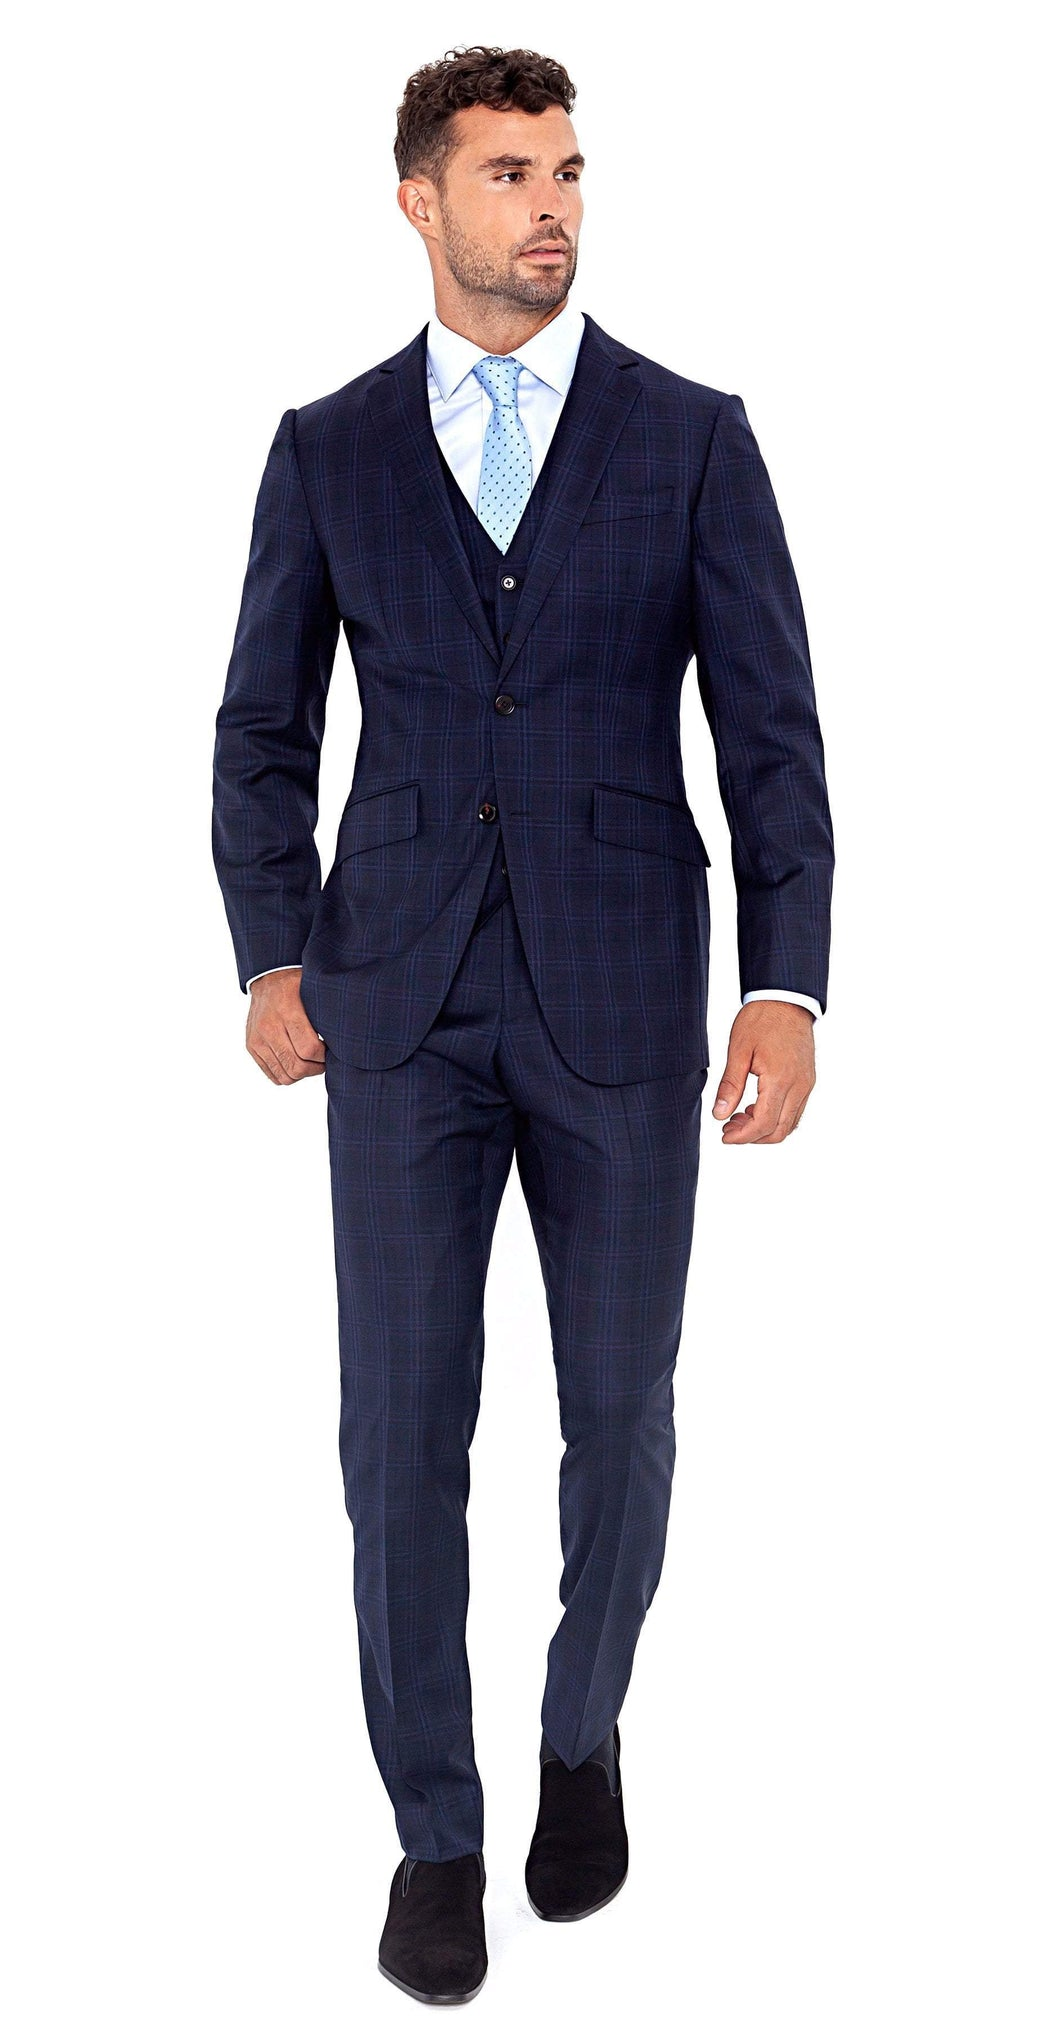 Four Seasons Super 130s 3-Piece Navy Plaid Suit - Enzo Custom